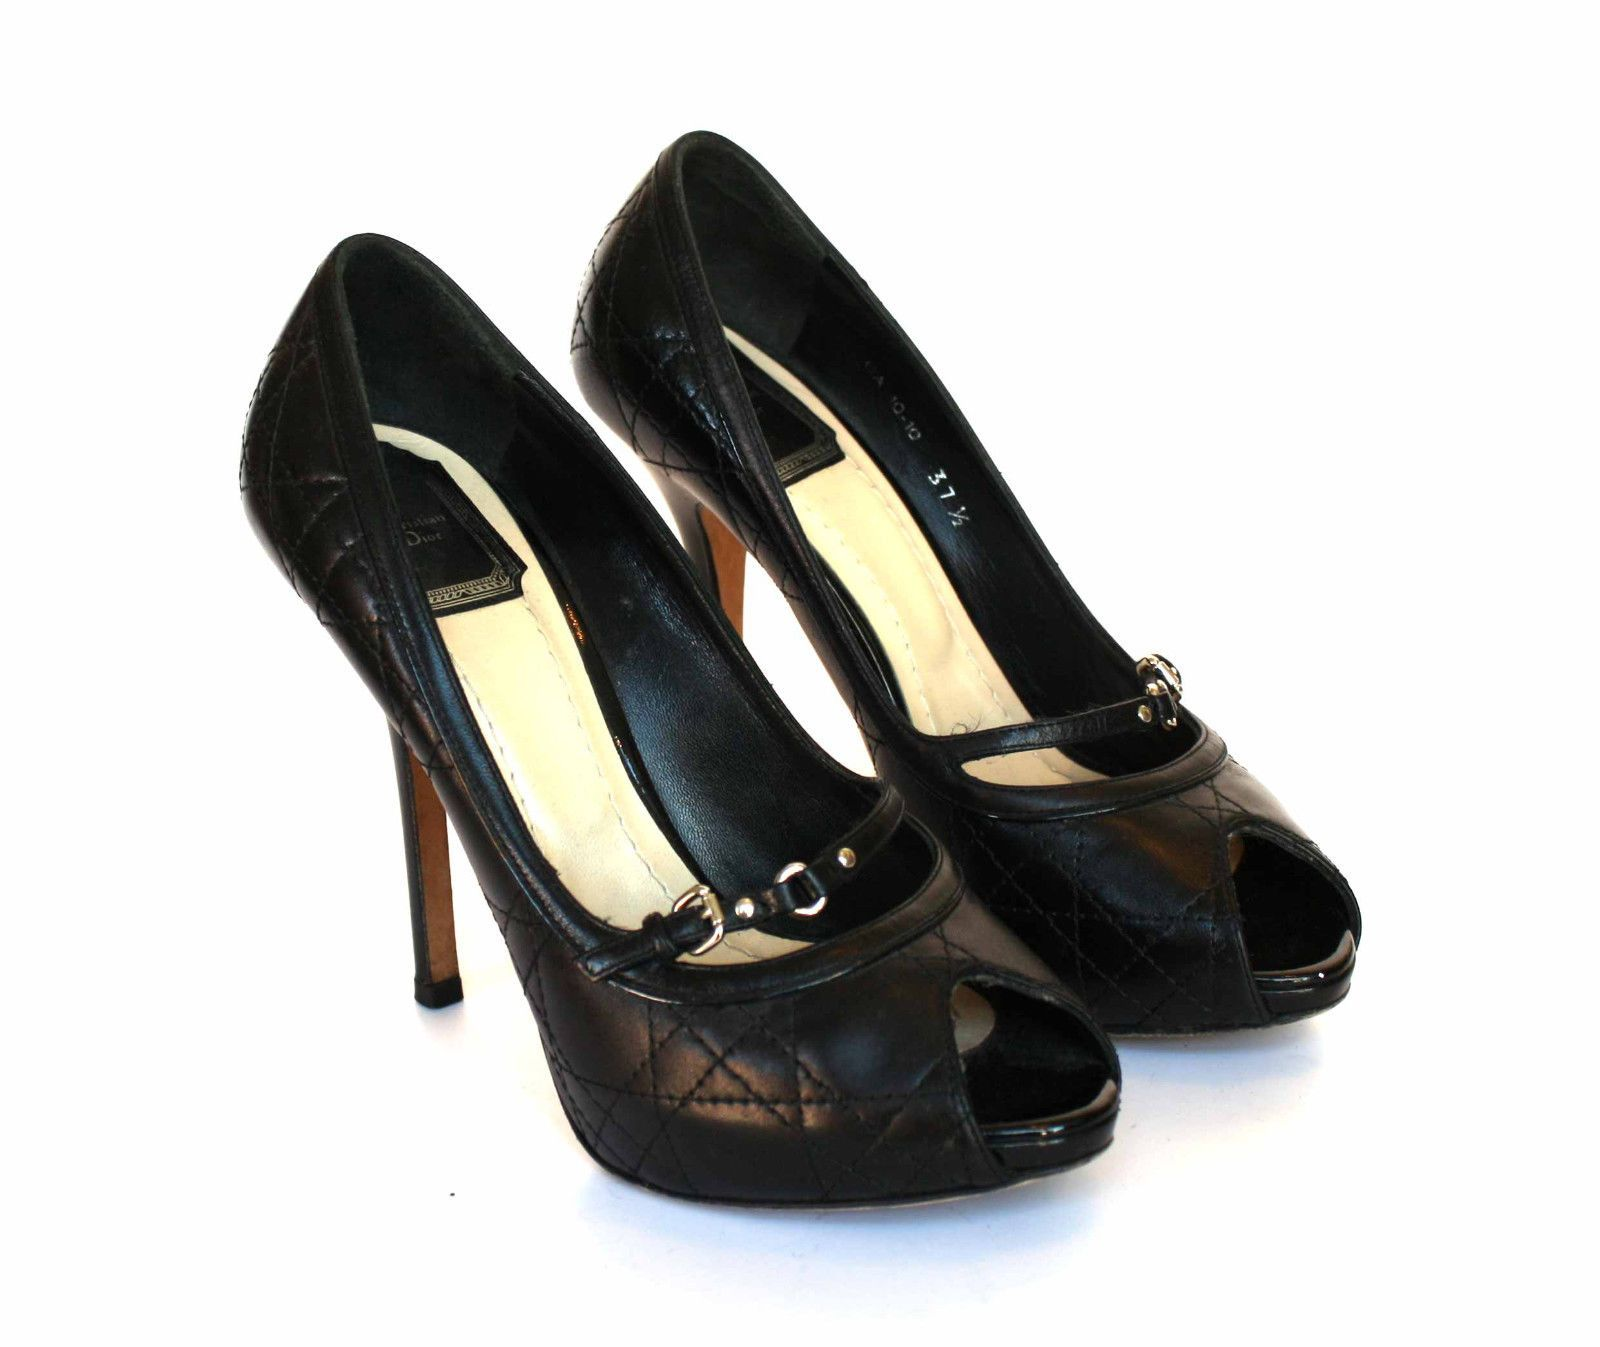 a0c6d7ded2 Christian Dior quilted black leather harness Mary Jane pumps, peep toe, 37.5